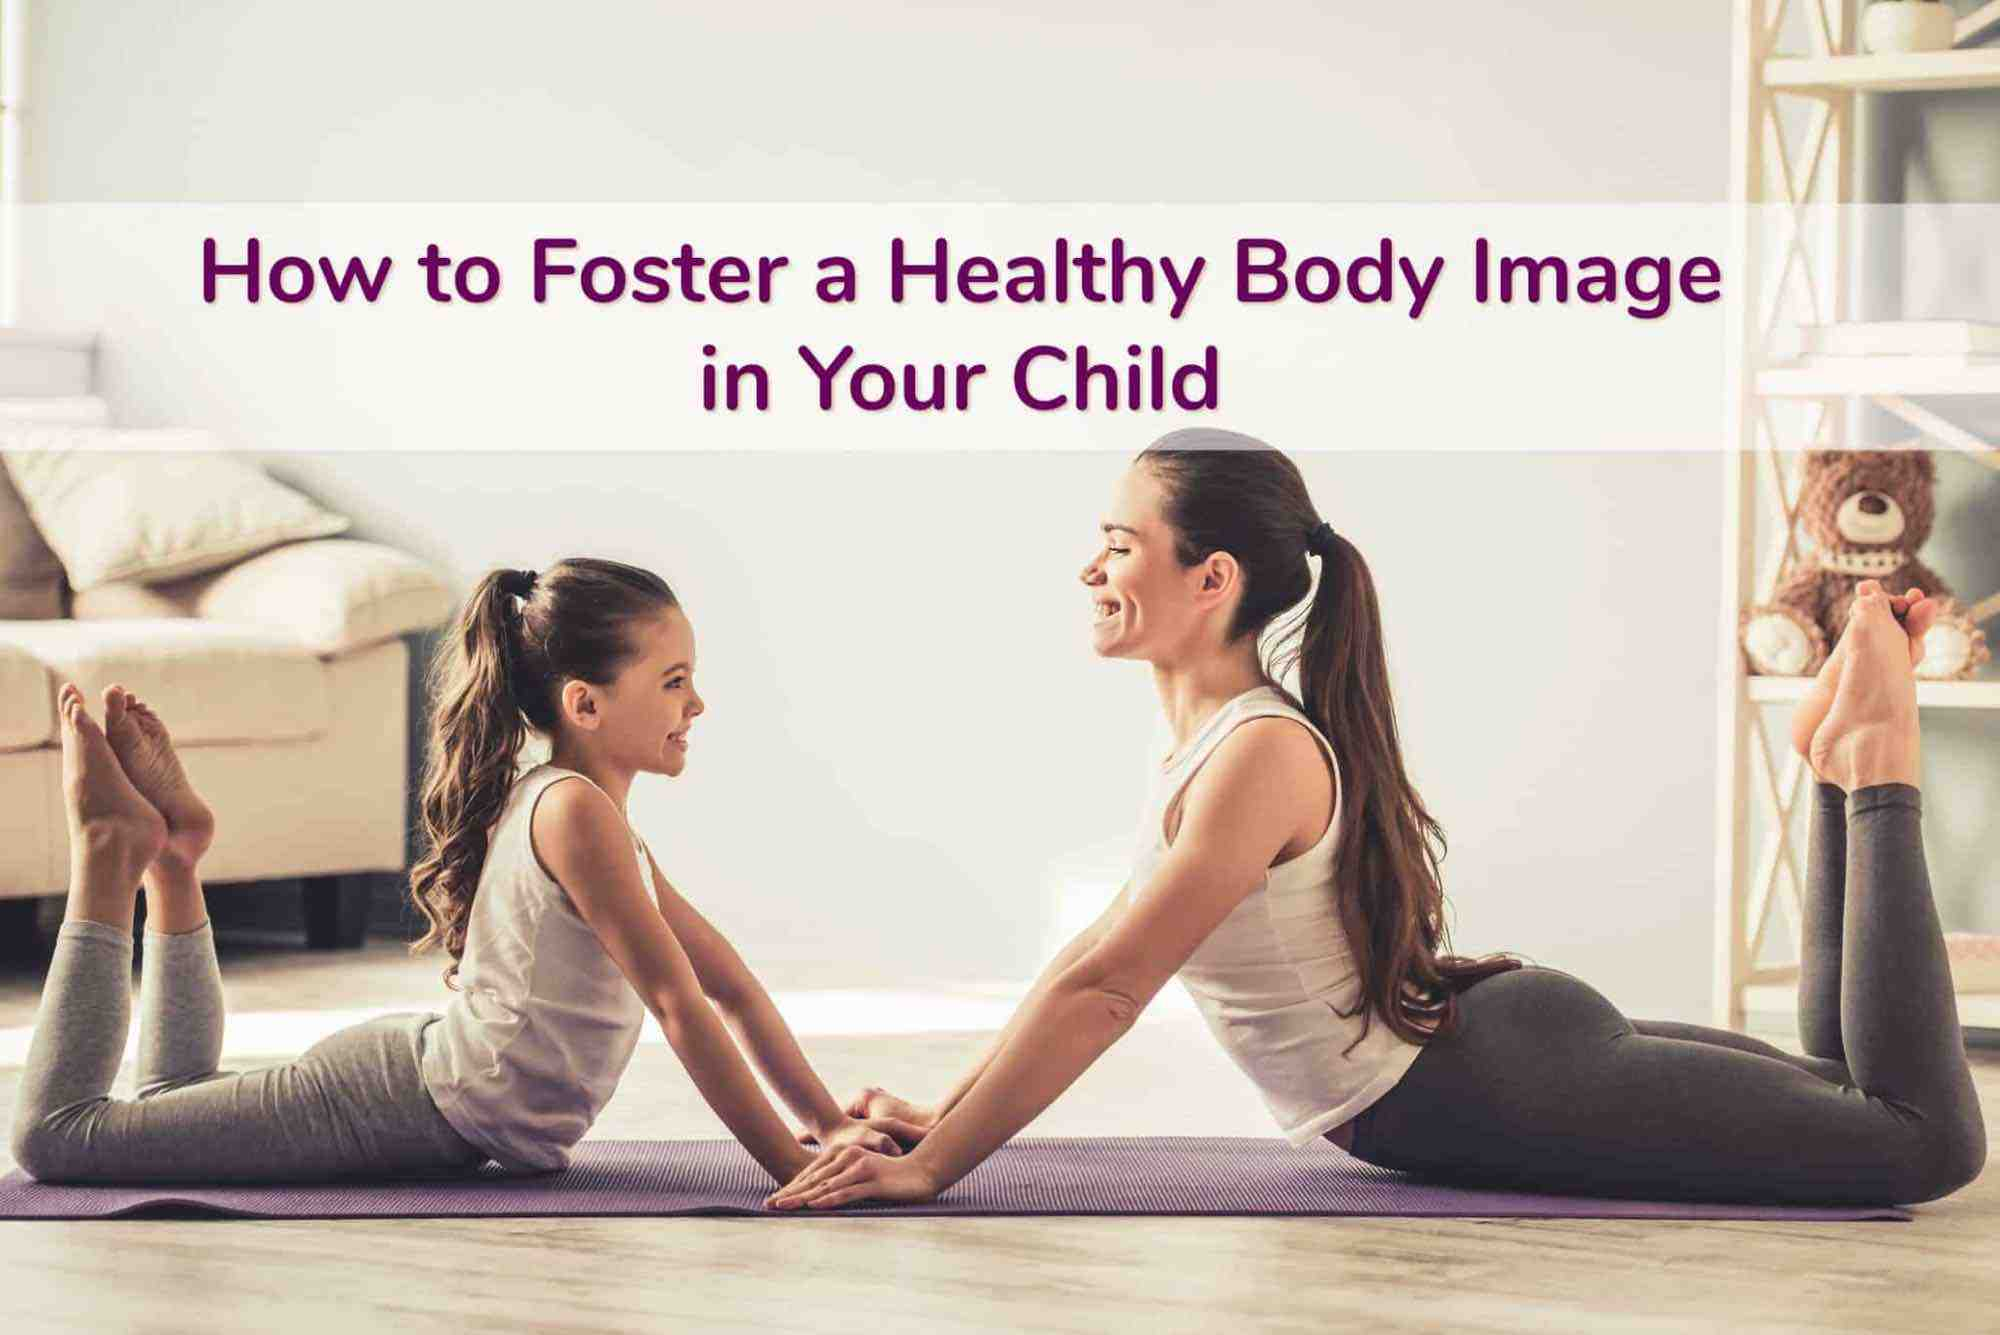 Mom & Young Daughter in identical yoga poses